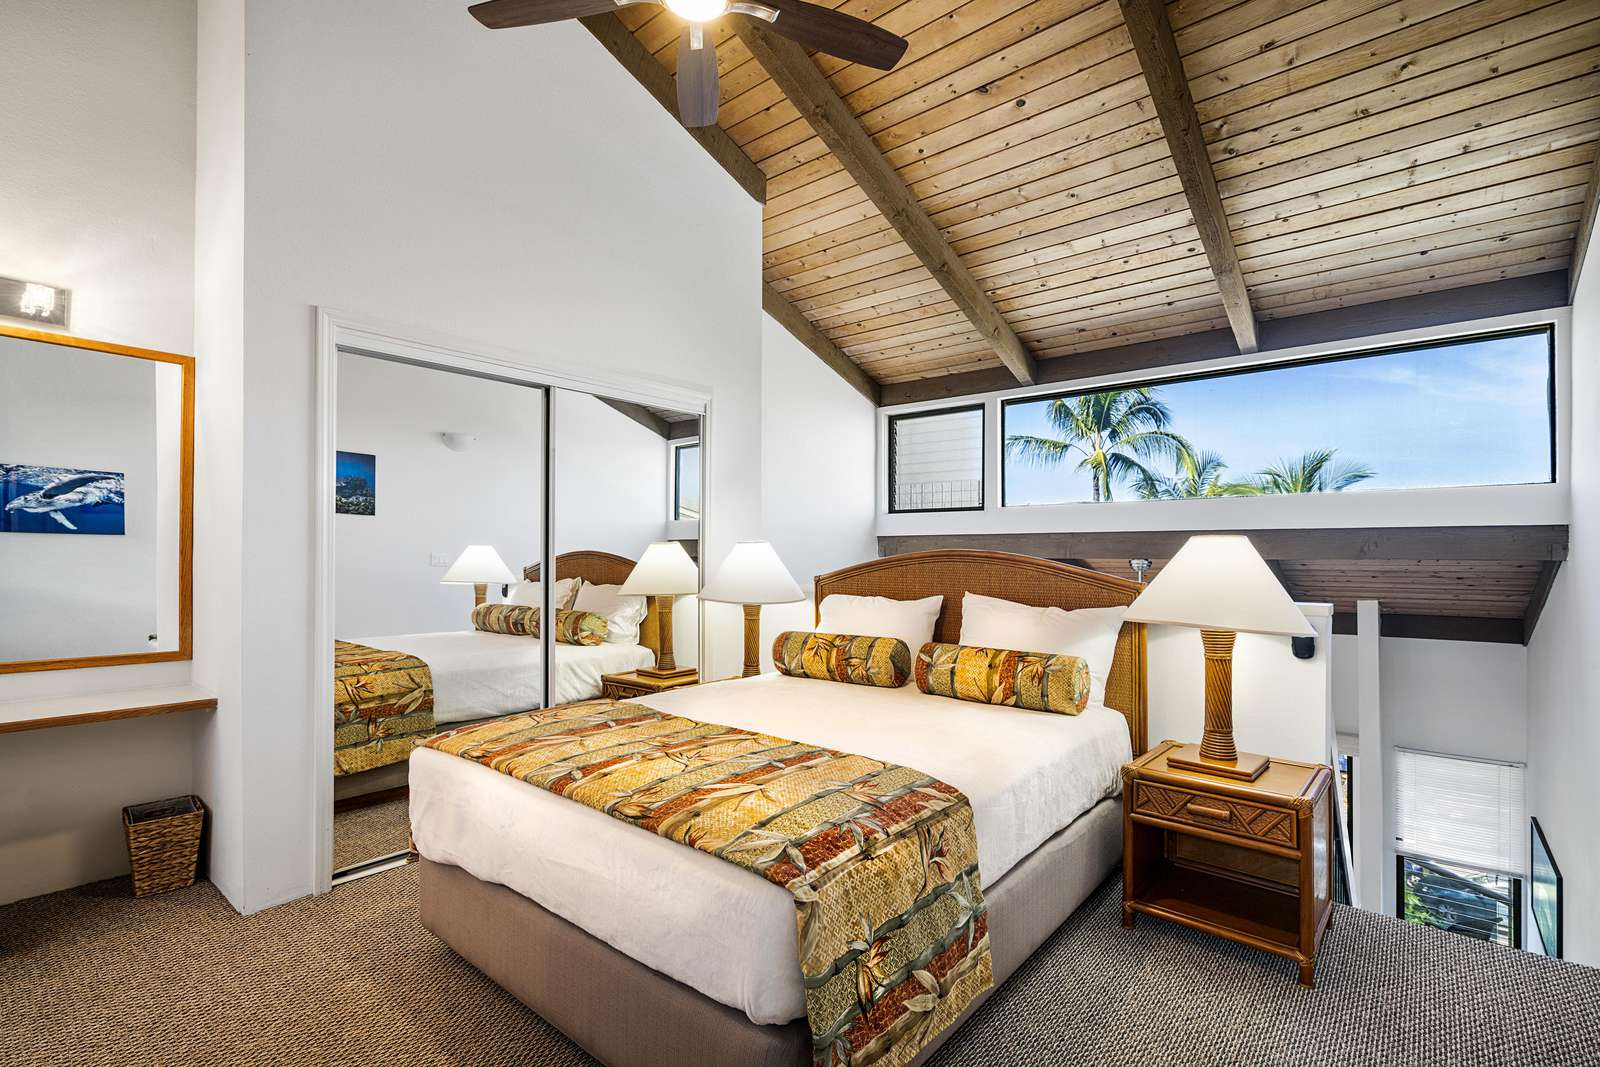 Loft bedroom with Queen bed and private bath